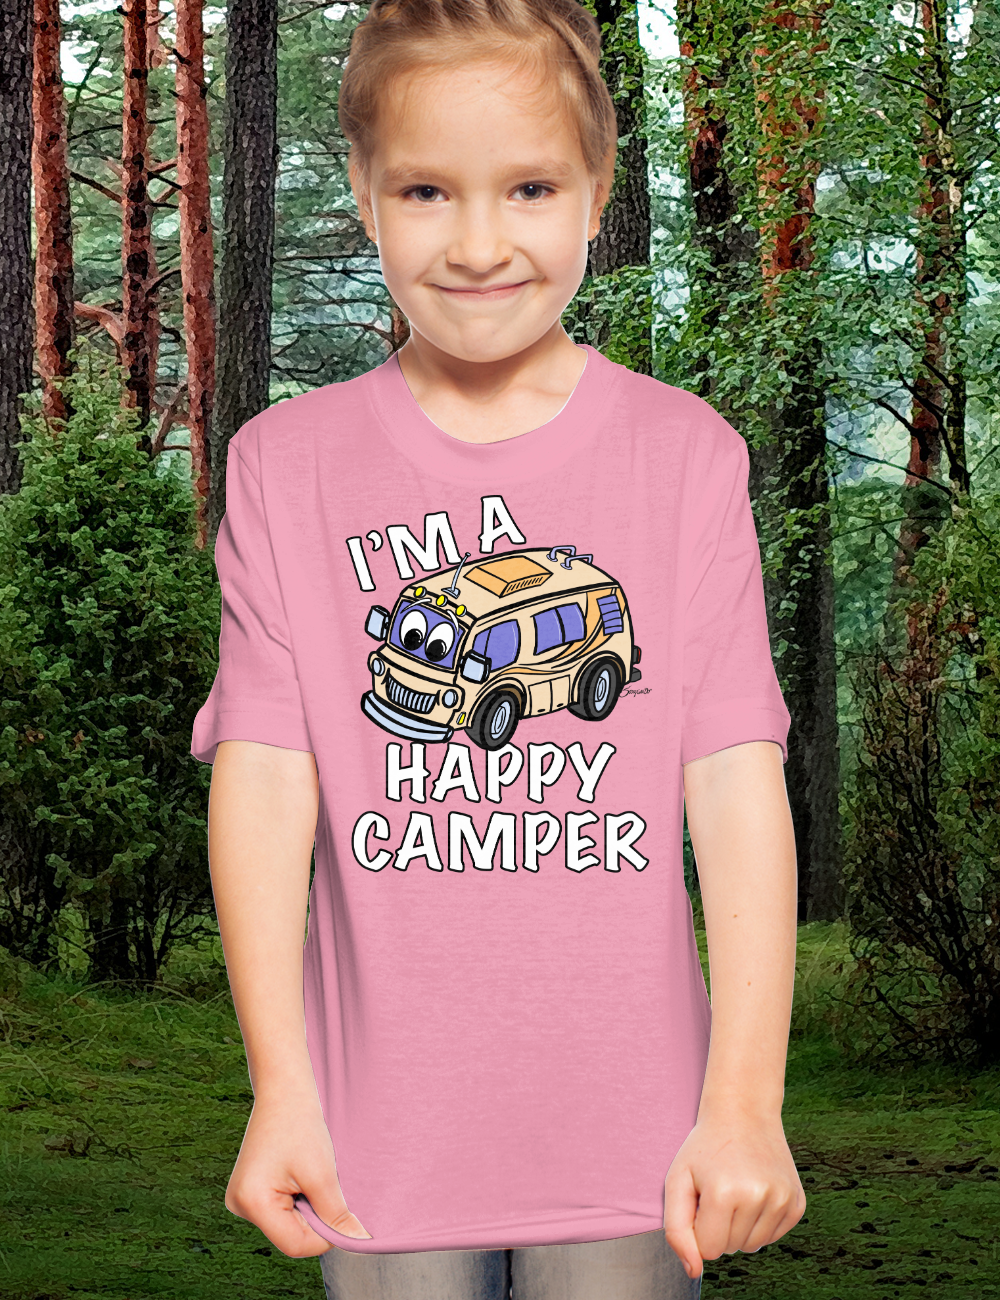 Camping T Shirts for kids funny HAPPY CAMPER RV Gift